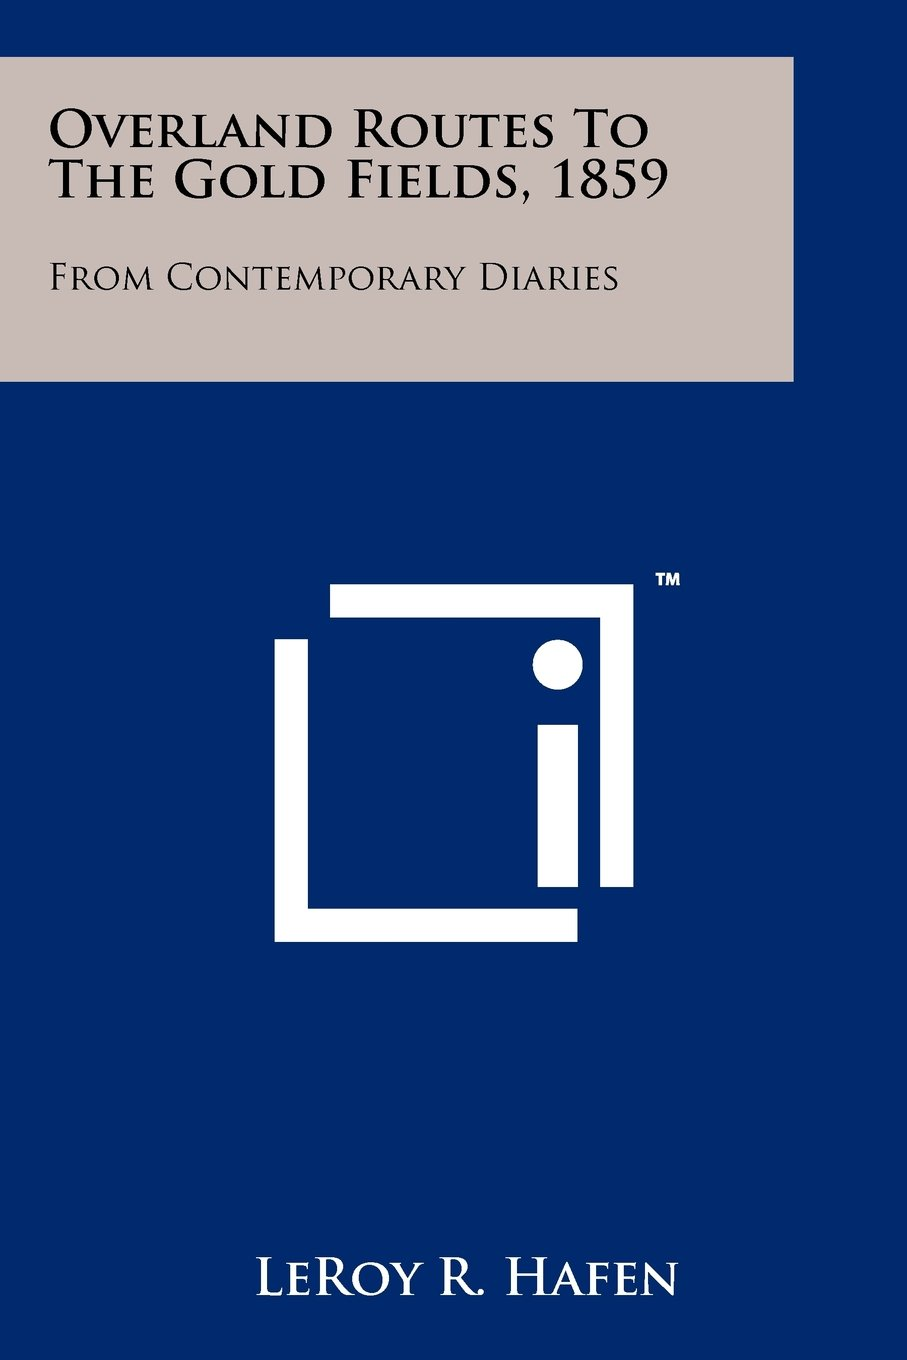 Overland Routes To The Gold Fields, 1859: From Contemporary Diaries  Paperback – October 15, 2011